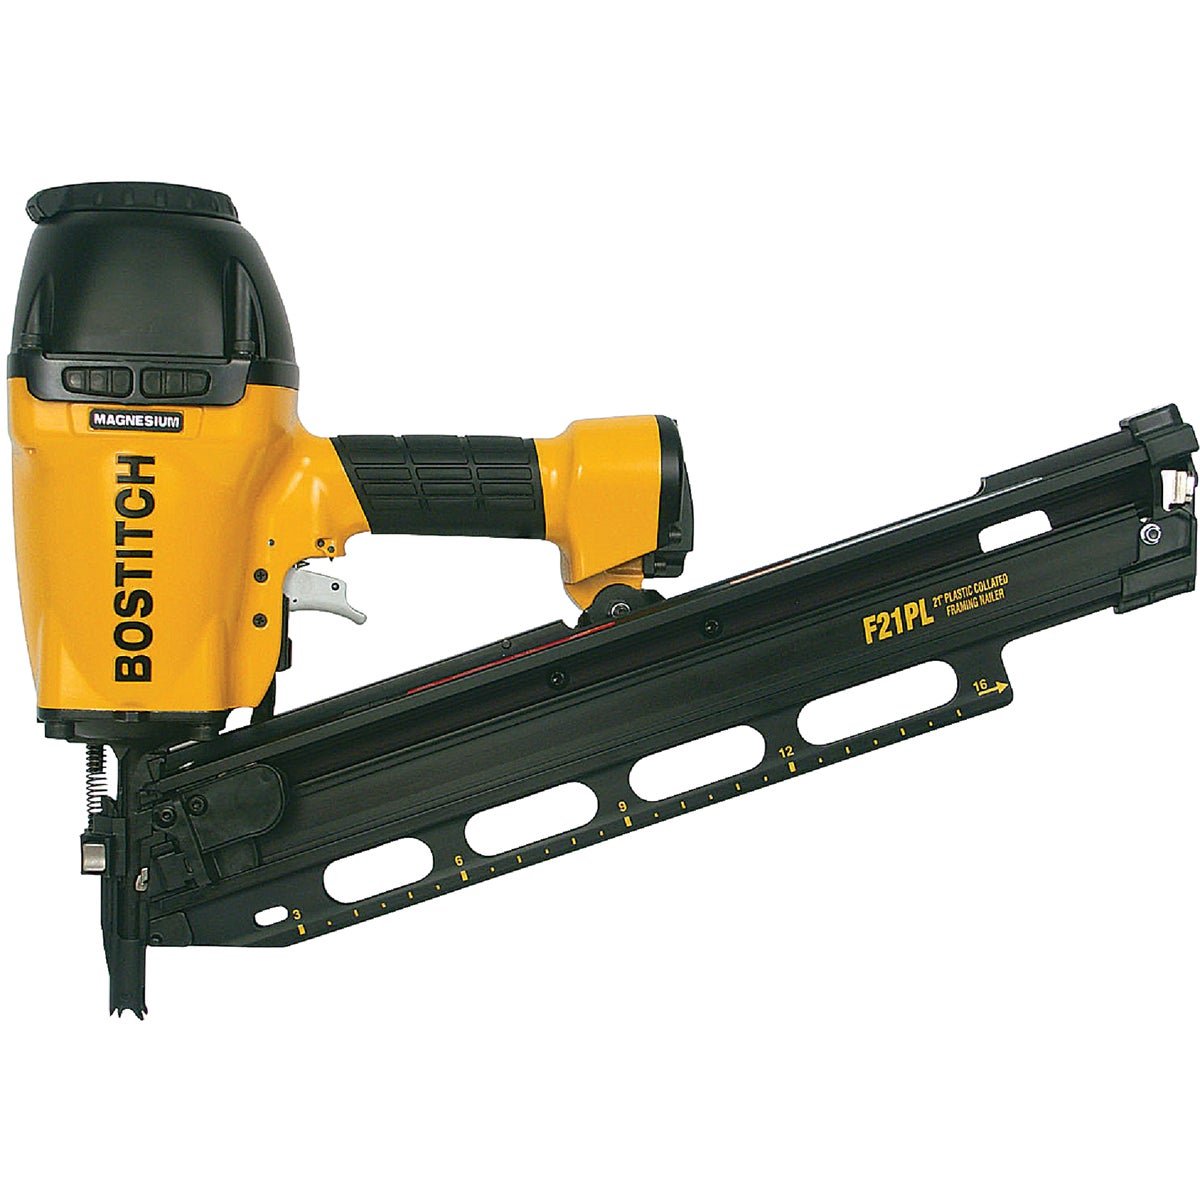 FULL RND HD FRMNG NAILER - F21PL2 by Stanley Bostitch